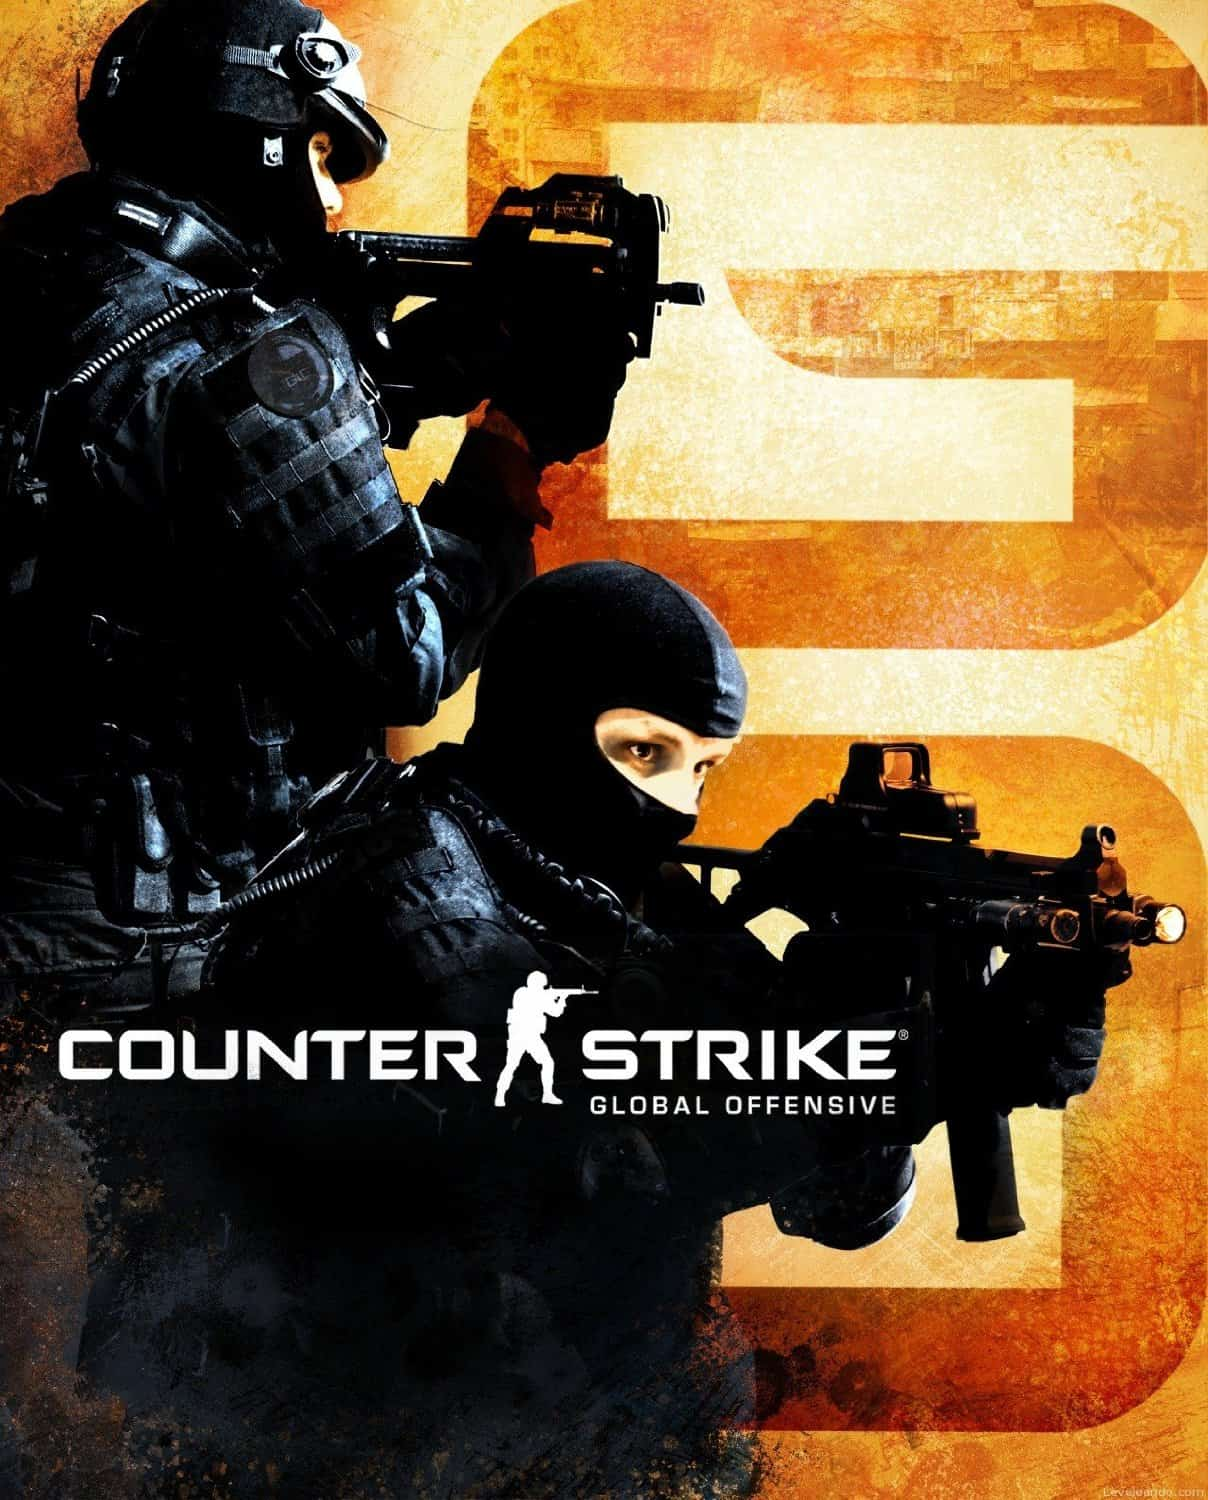 Rainbow Six Siege [ R6 ] vs CSGO - Which Tactical Shooter Is